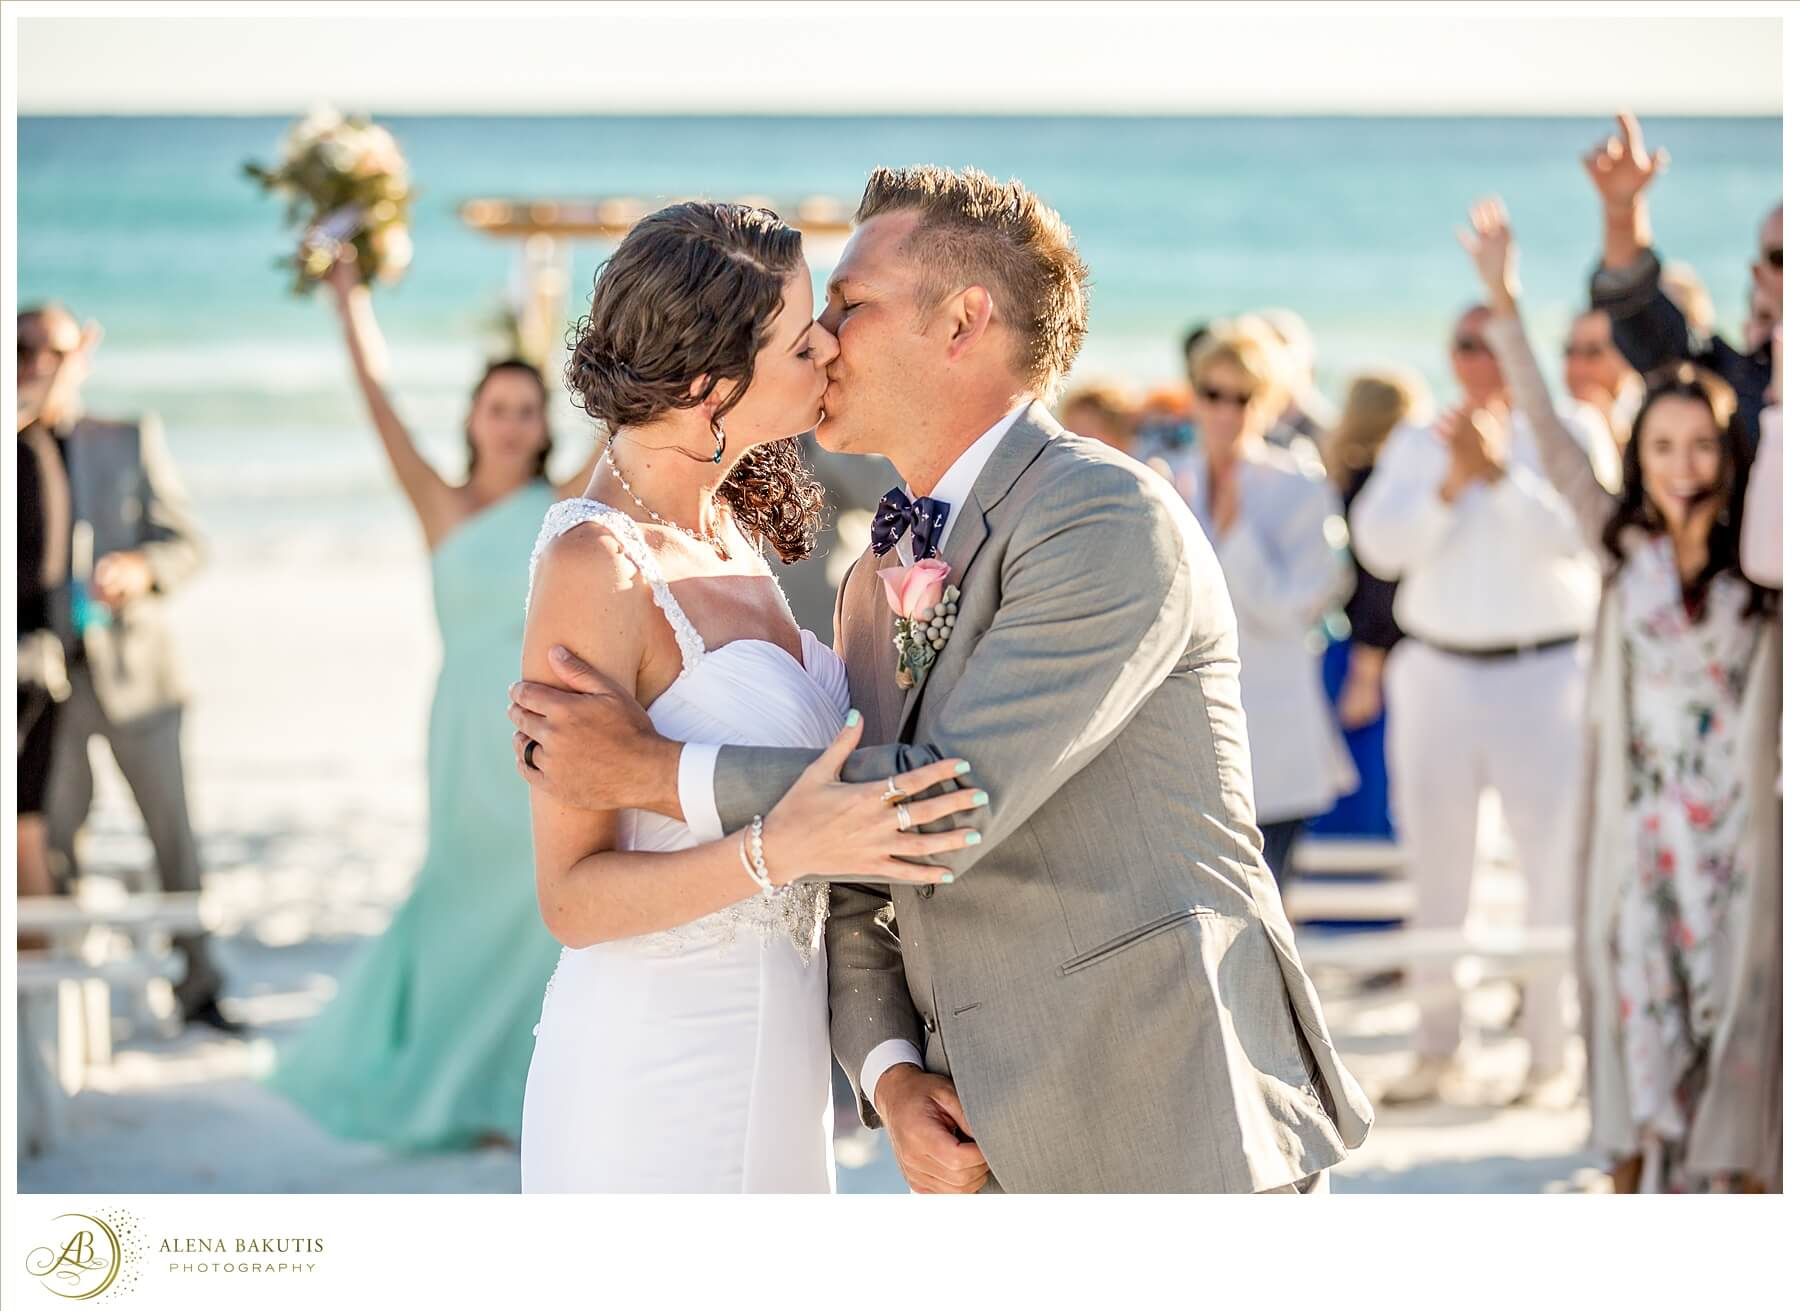 destin beach weddings Alena Bakutis Photography - Amber Brandon-436_WEB